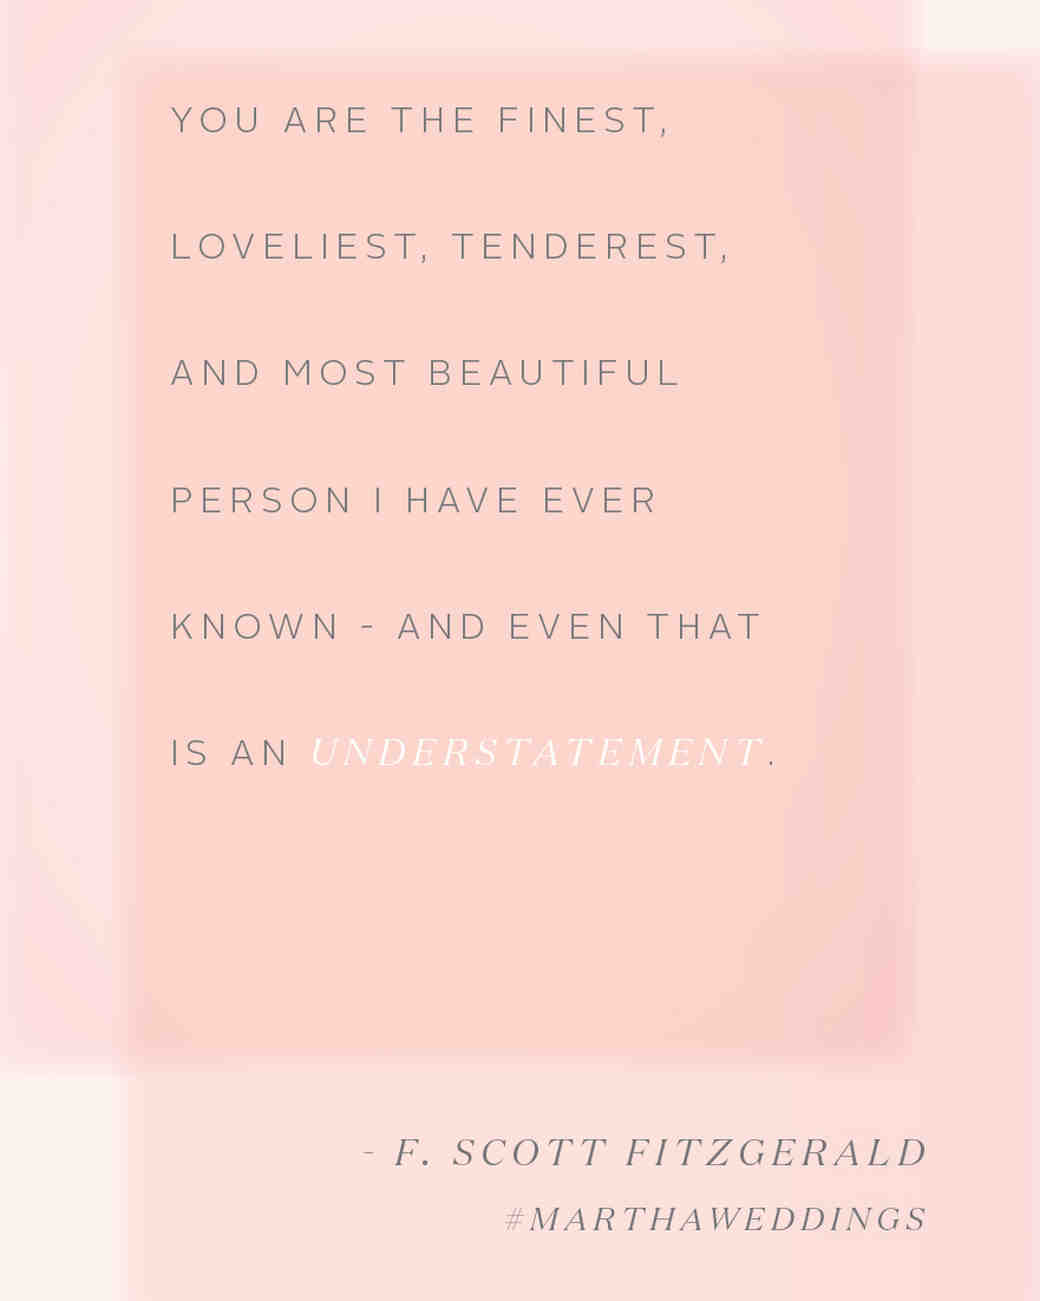 Wedding Quotes Love The 20 Best Love Quotes Of All Time  Martha Stewart Weddings